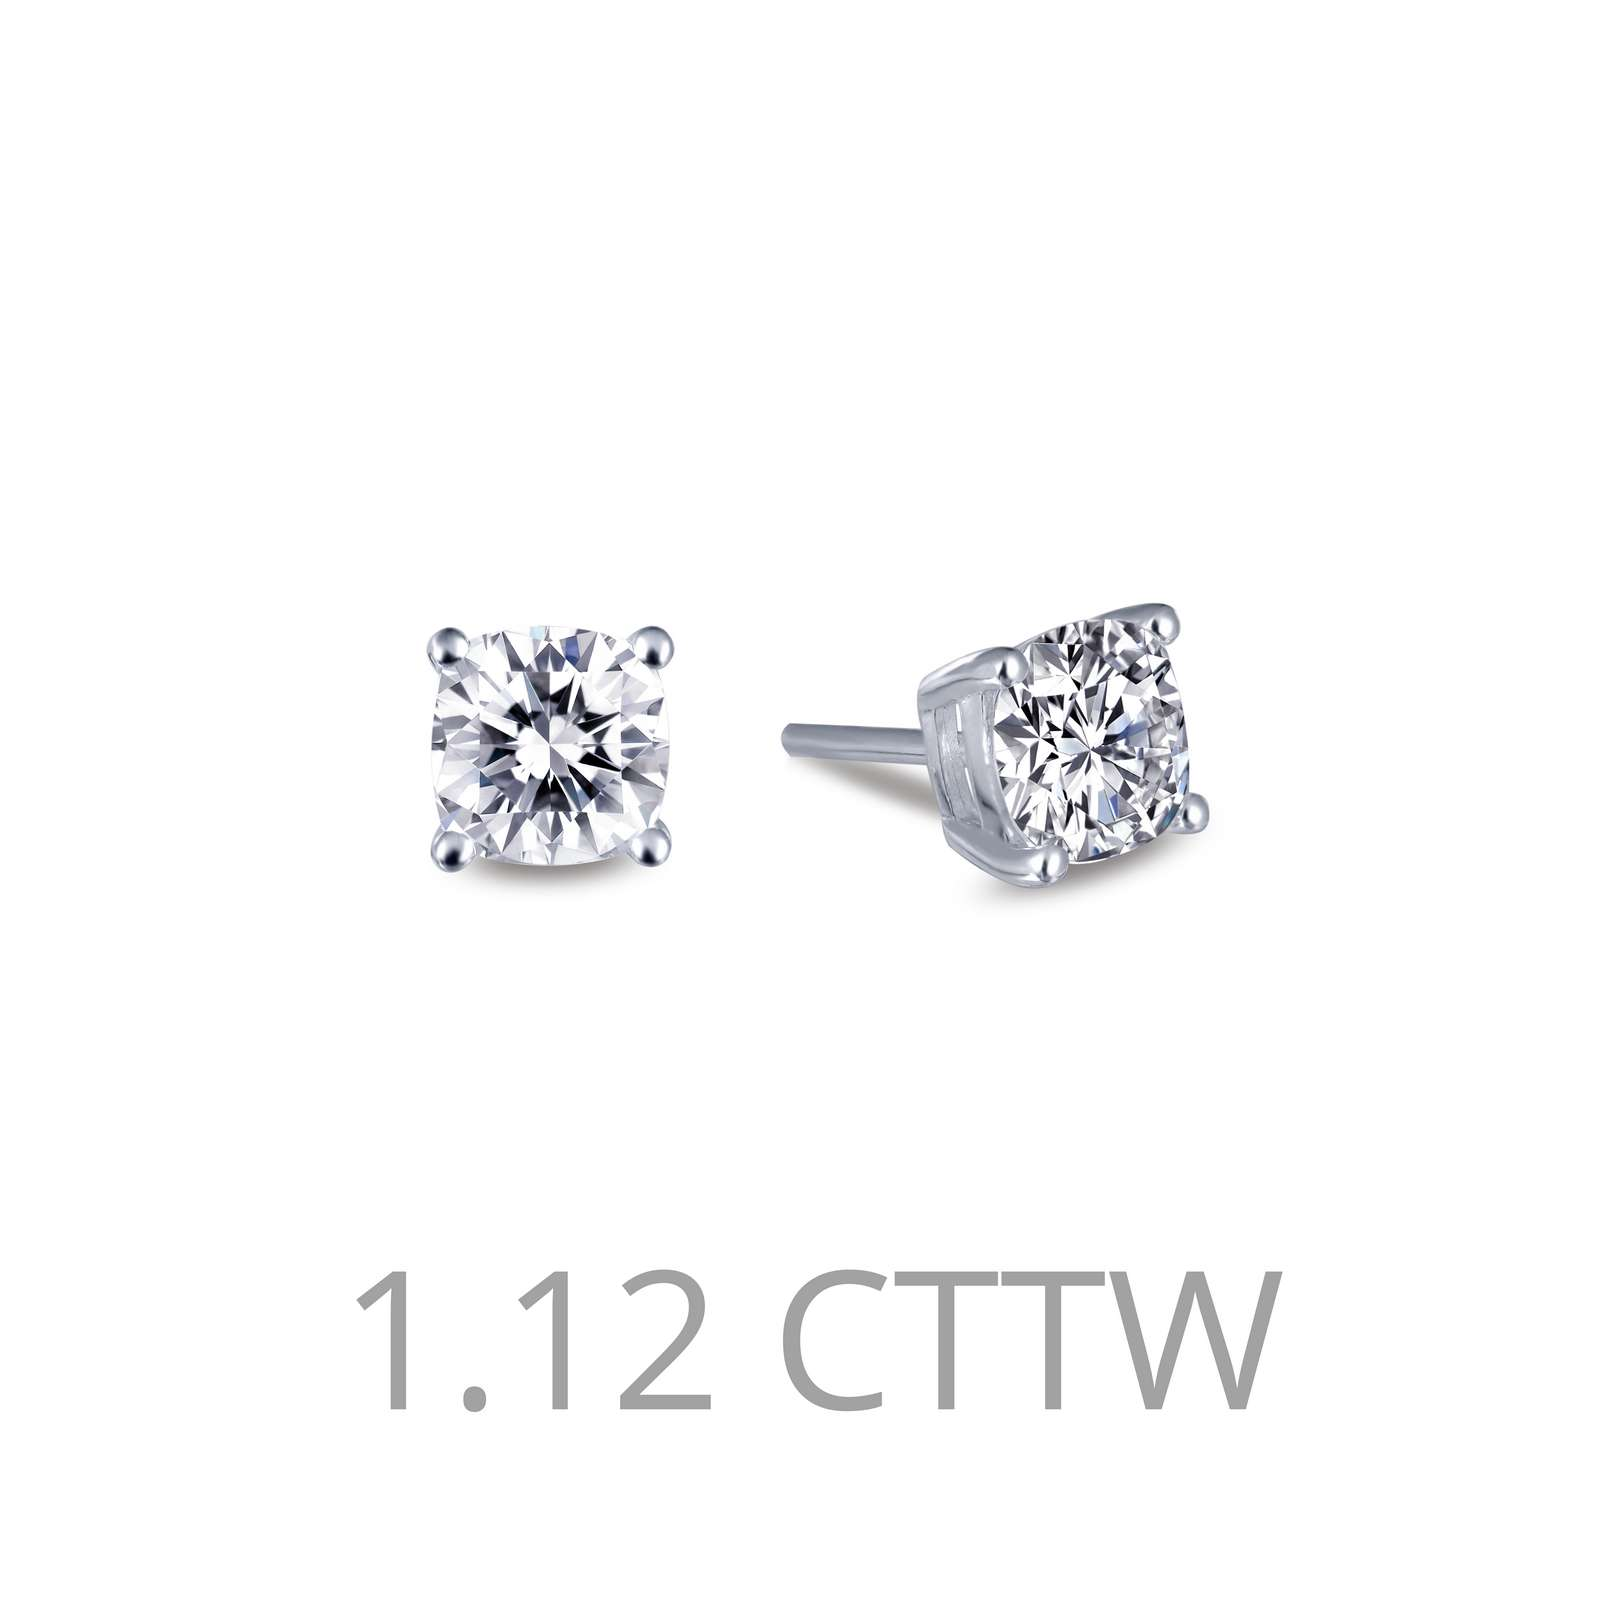 Shop our online store for the best priced earrings. We carry a wide variety of earrings in gold, silver and platinum with or without diamonds and gemstones. See our online store or stop into our showroom in Jensen Beach, Florida.